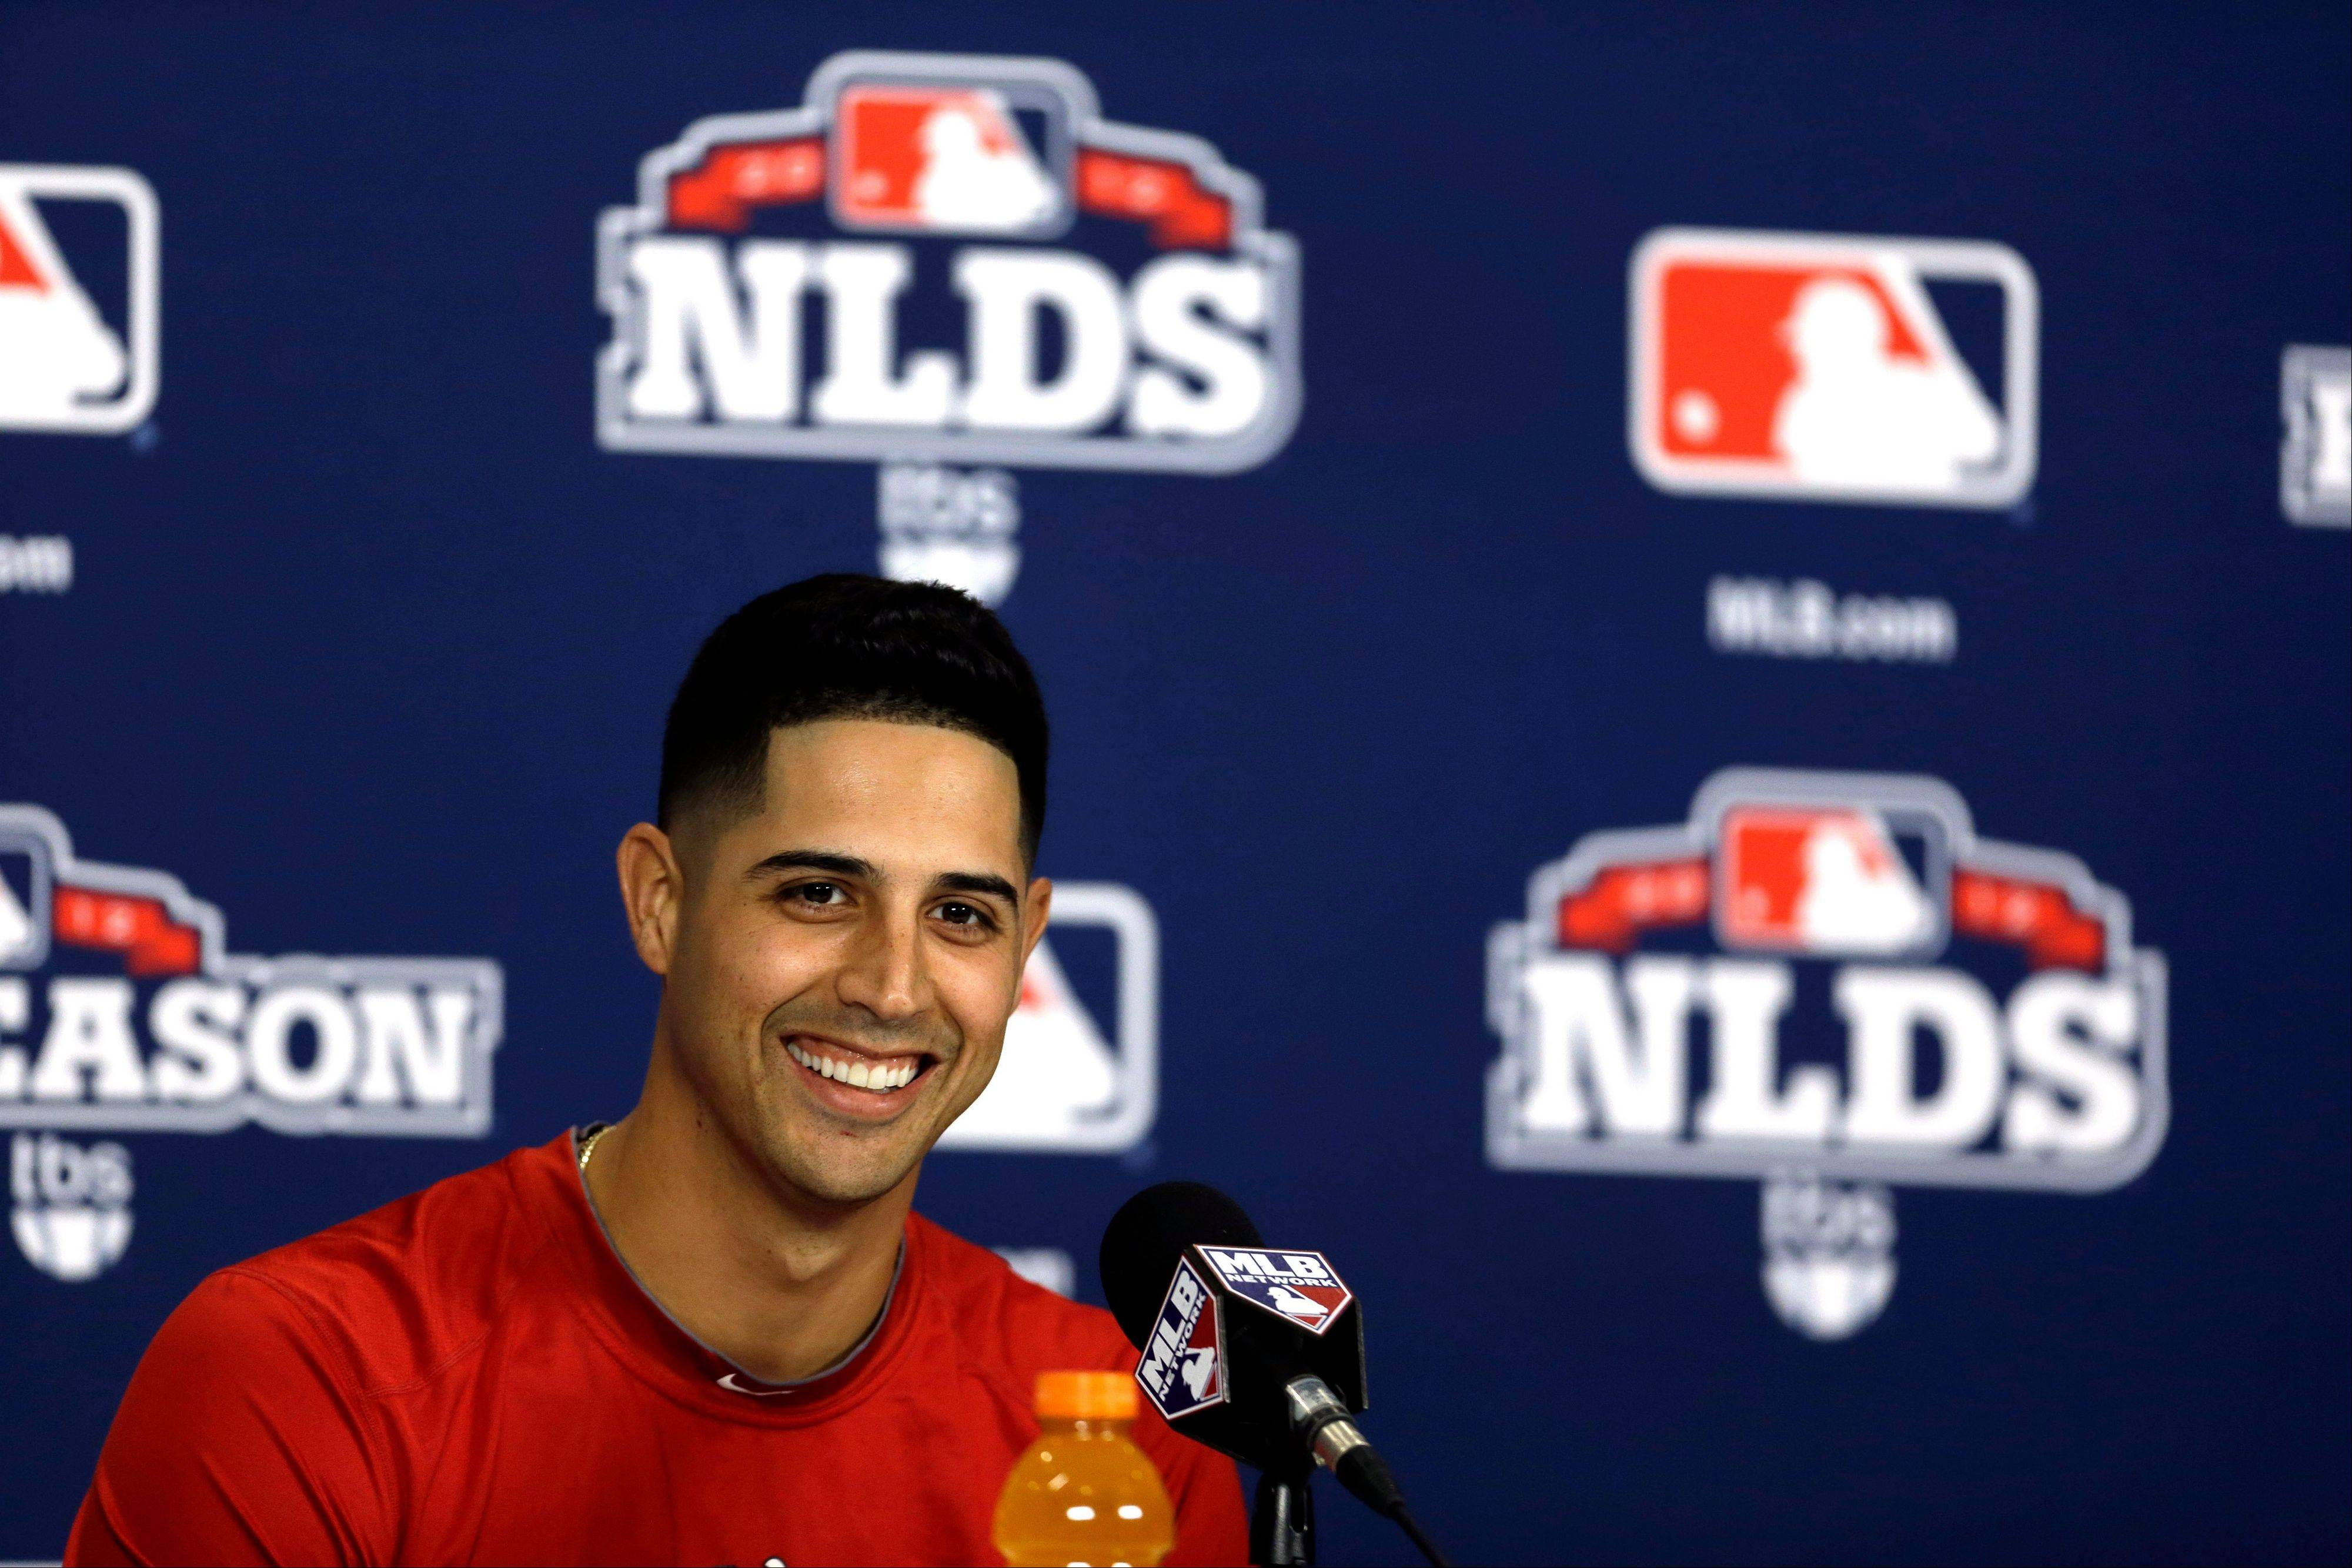 Washington Nationals starting pitcher Gio Gonzalez speaks Saturday during a news conference in St. Louis. Gonzalez is scheduled to start for the Nationals in Game 1 of the National League division series against the St. Louis Cardinals on Sunday.